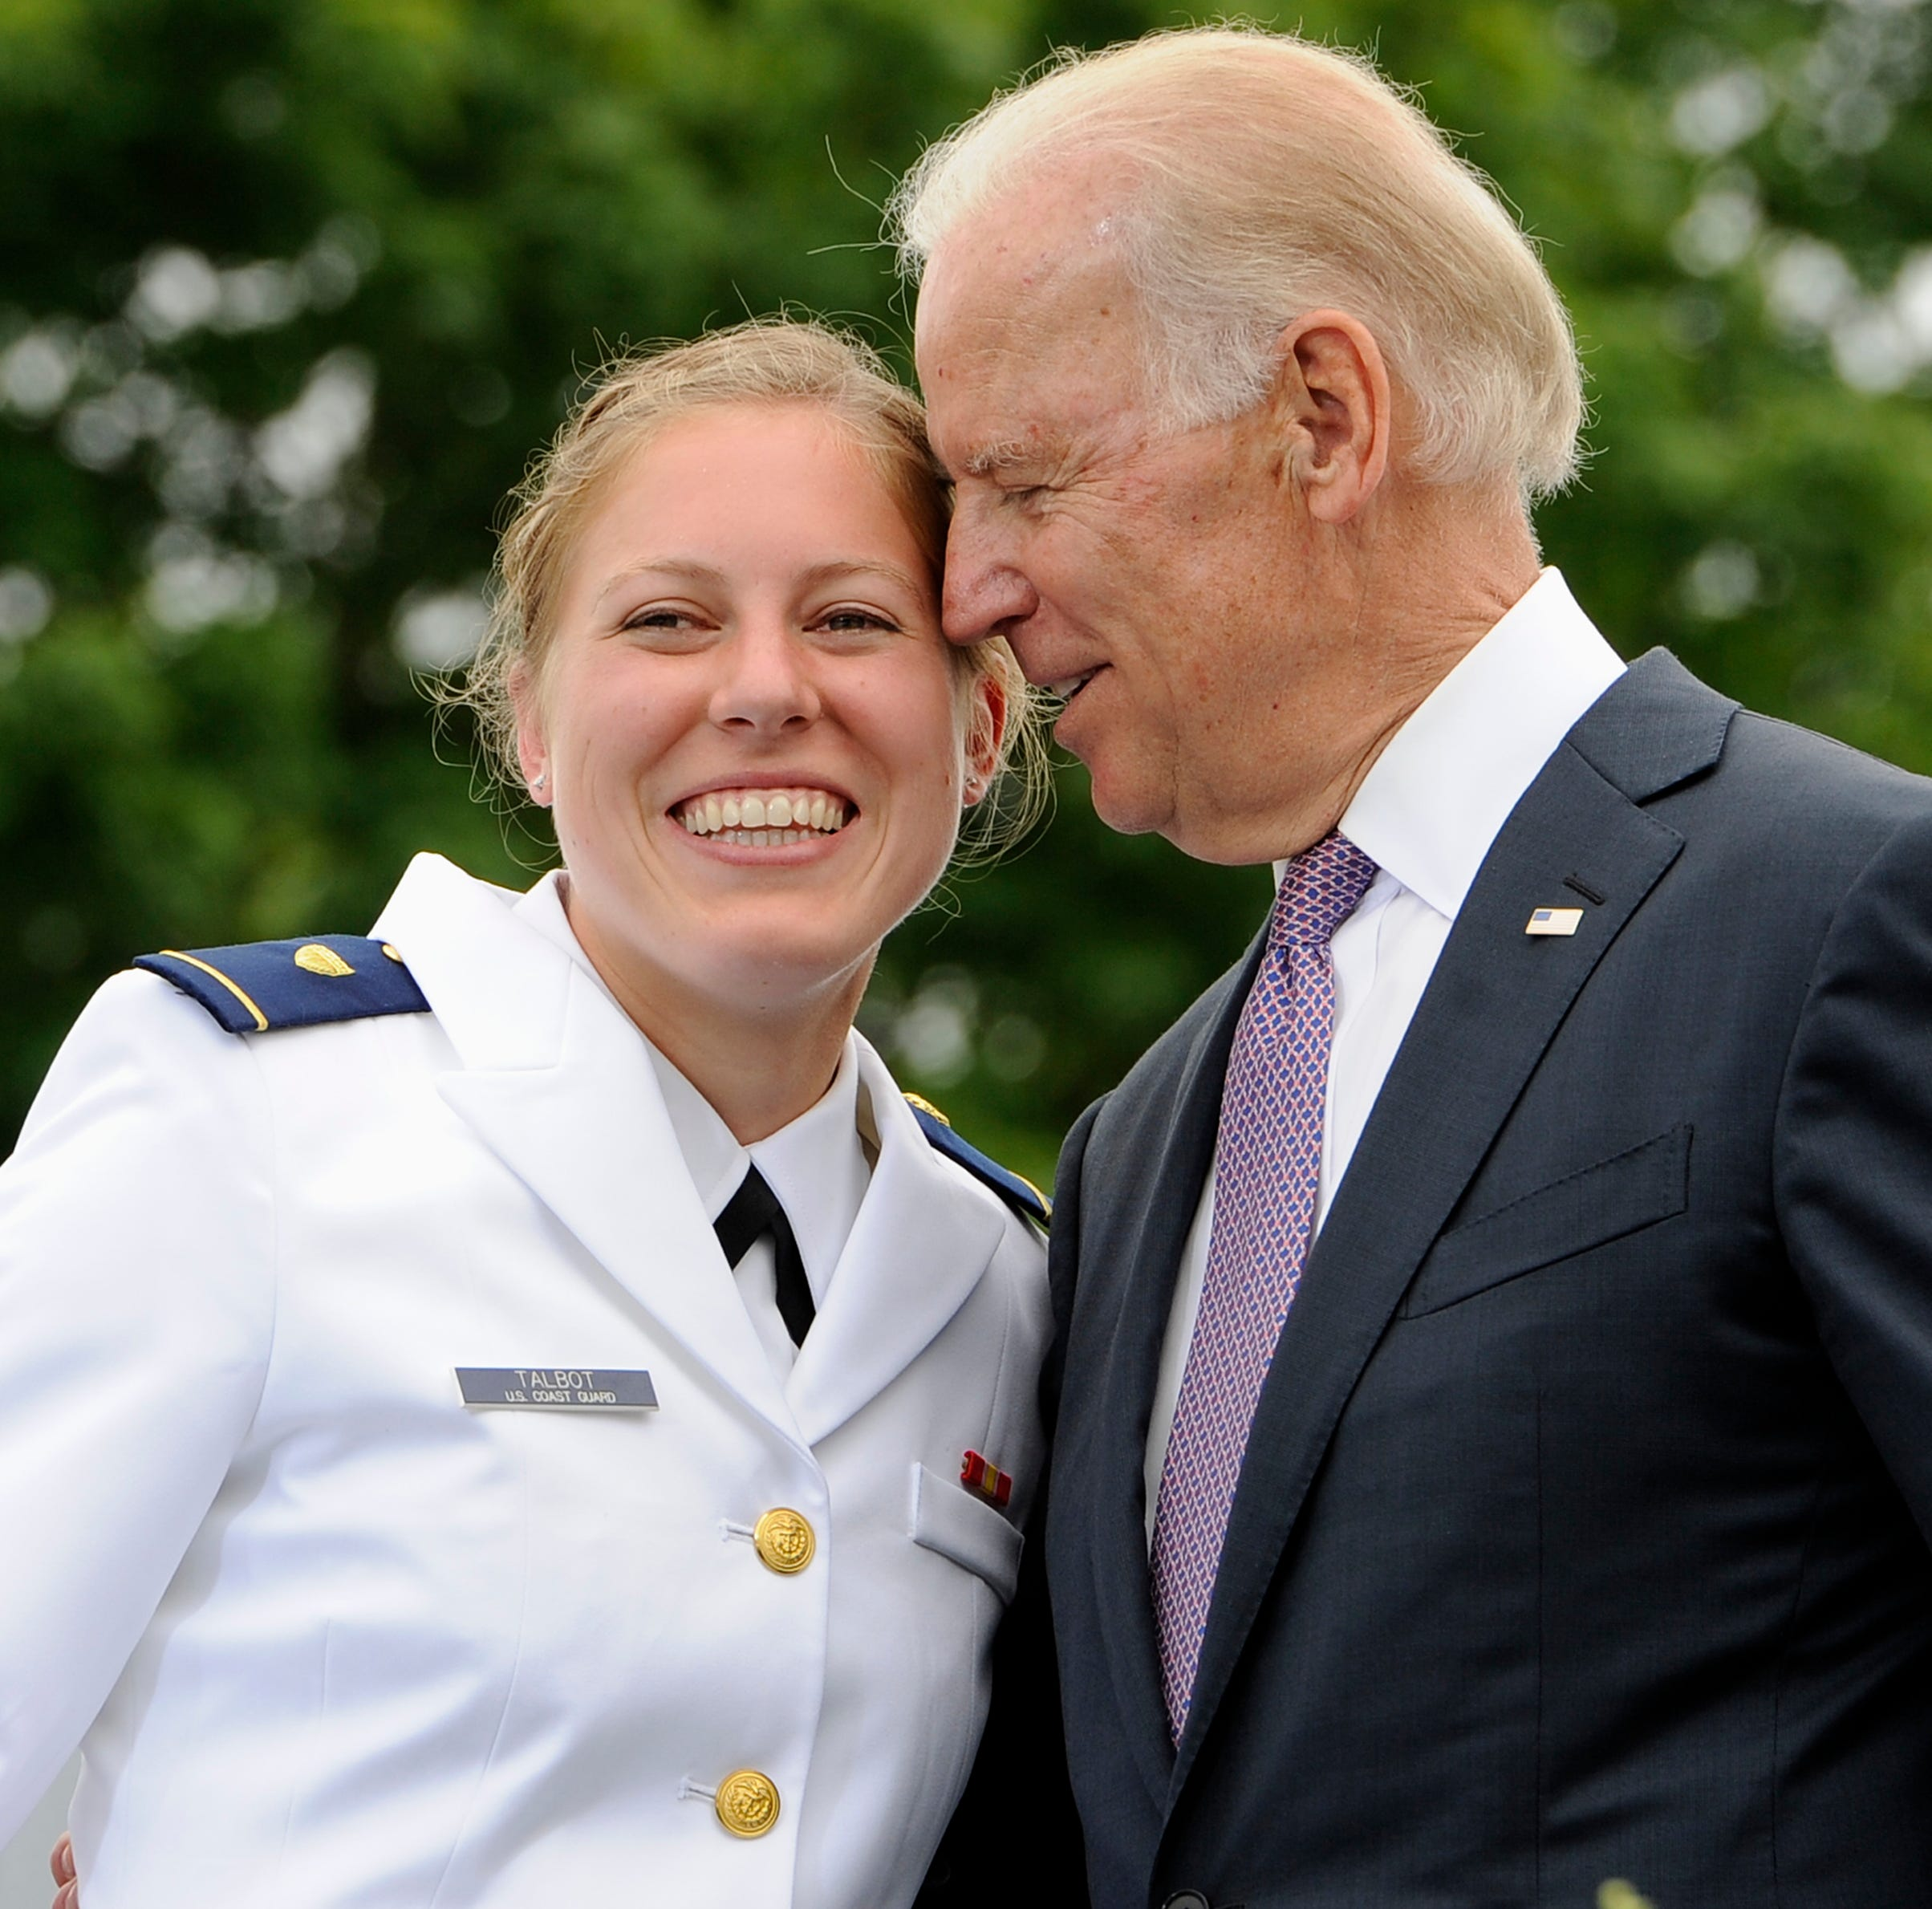 The pretzeled defense of Joe Biden